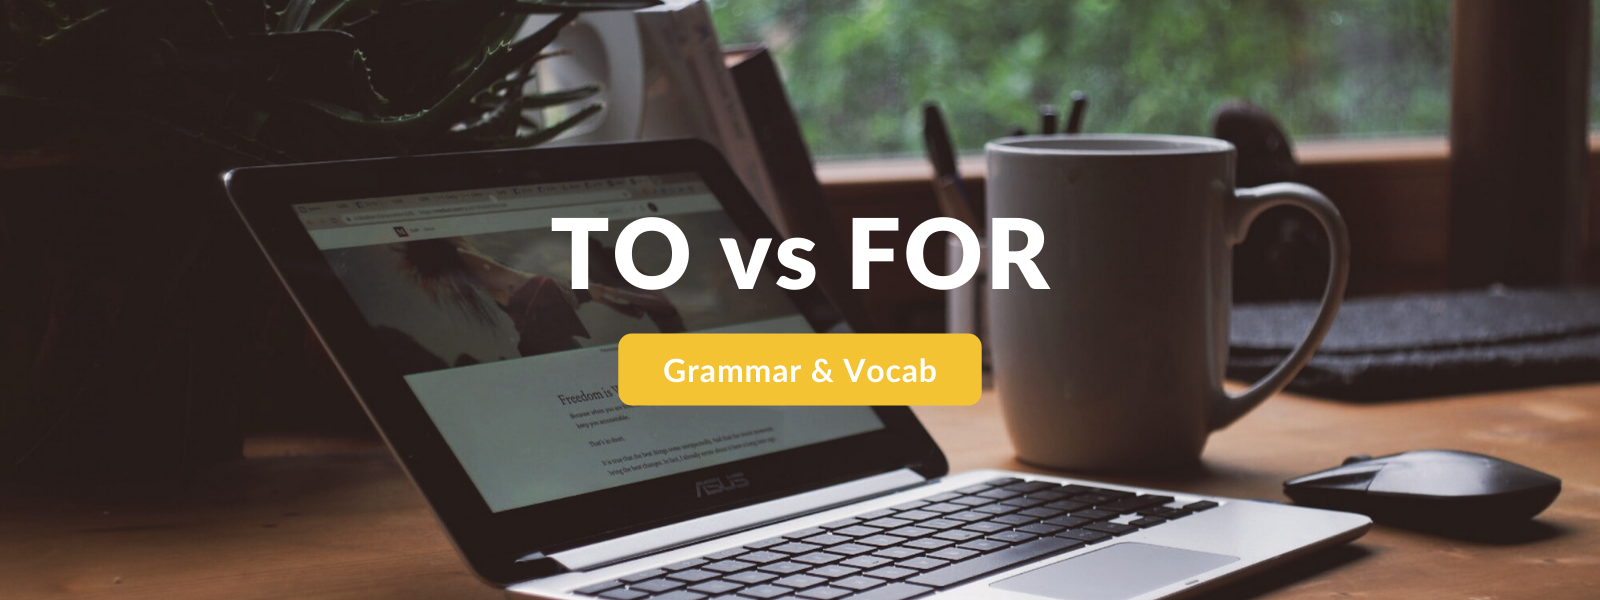 TO VS FOR English grammar Tips Talaera